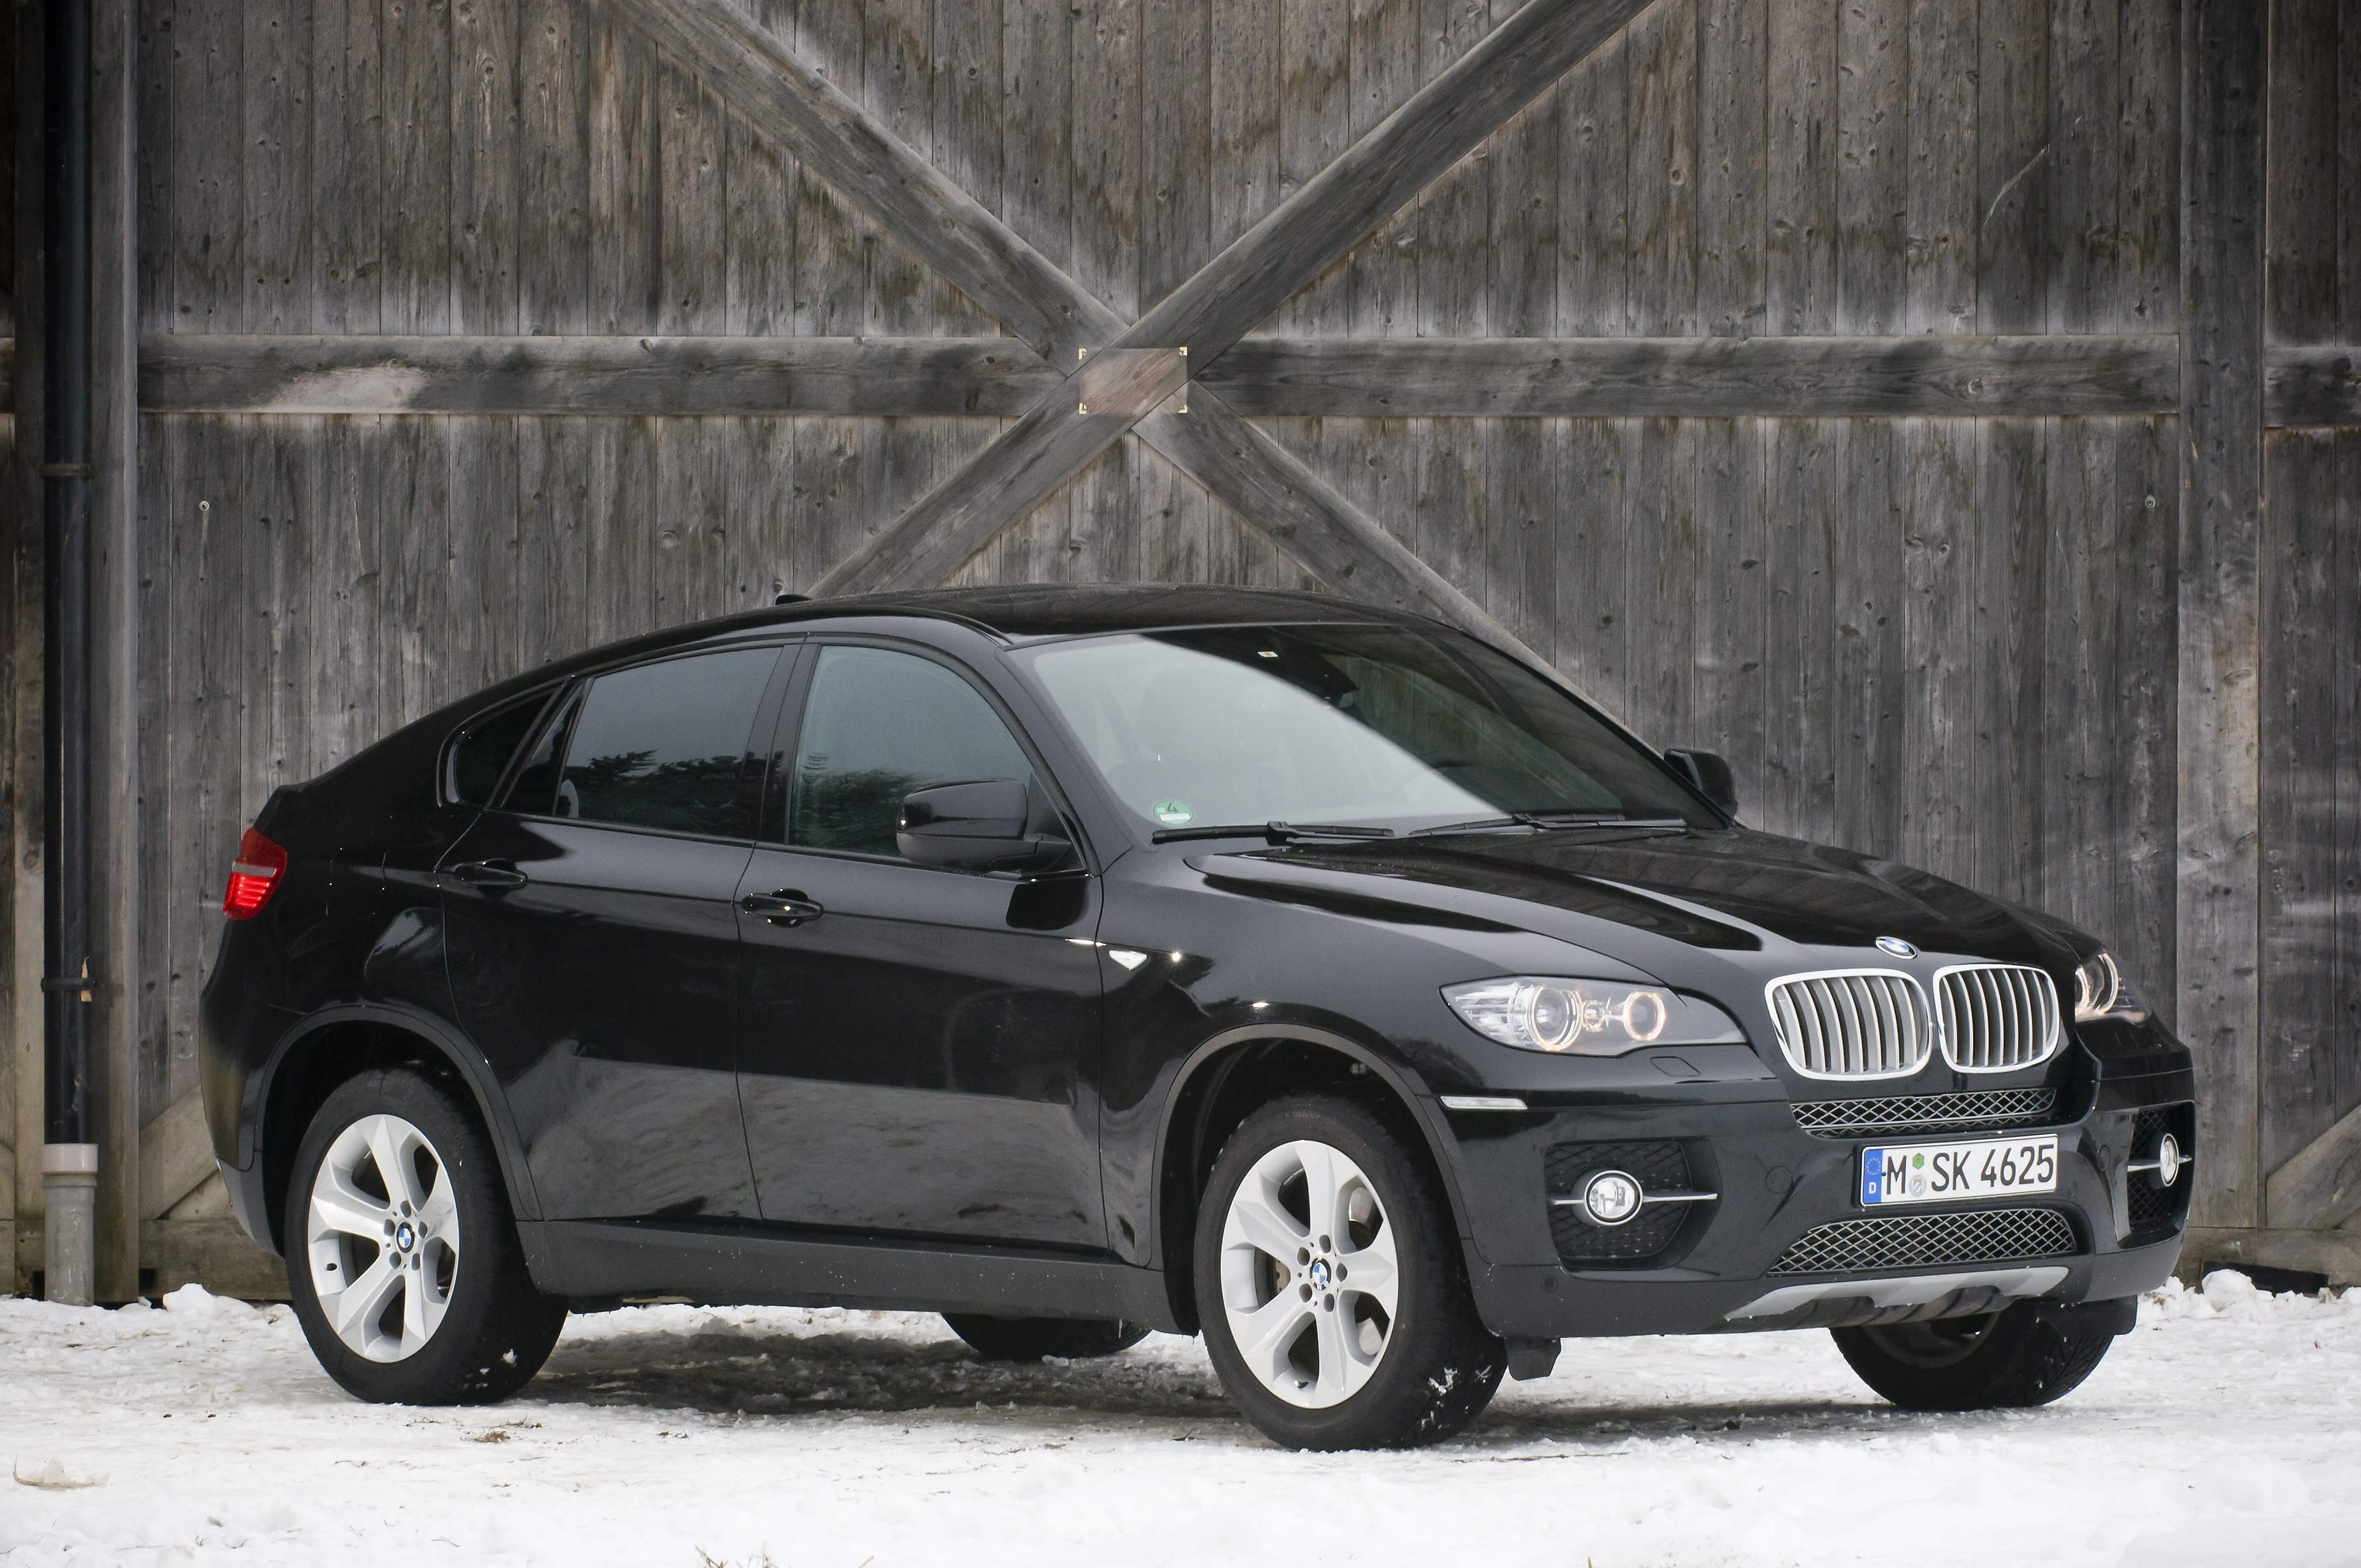 BMW X6 Is That It Only Sits Up To Four Passengers Wallpaper For Android Wallpaper